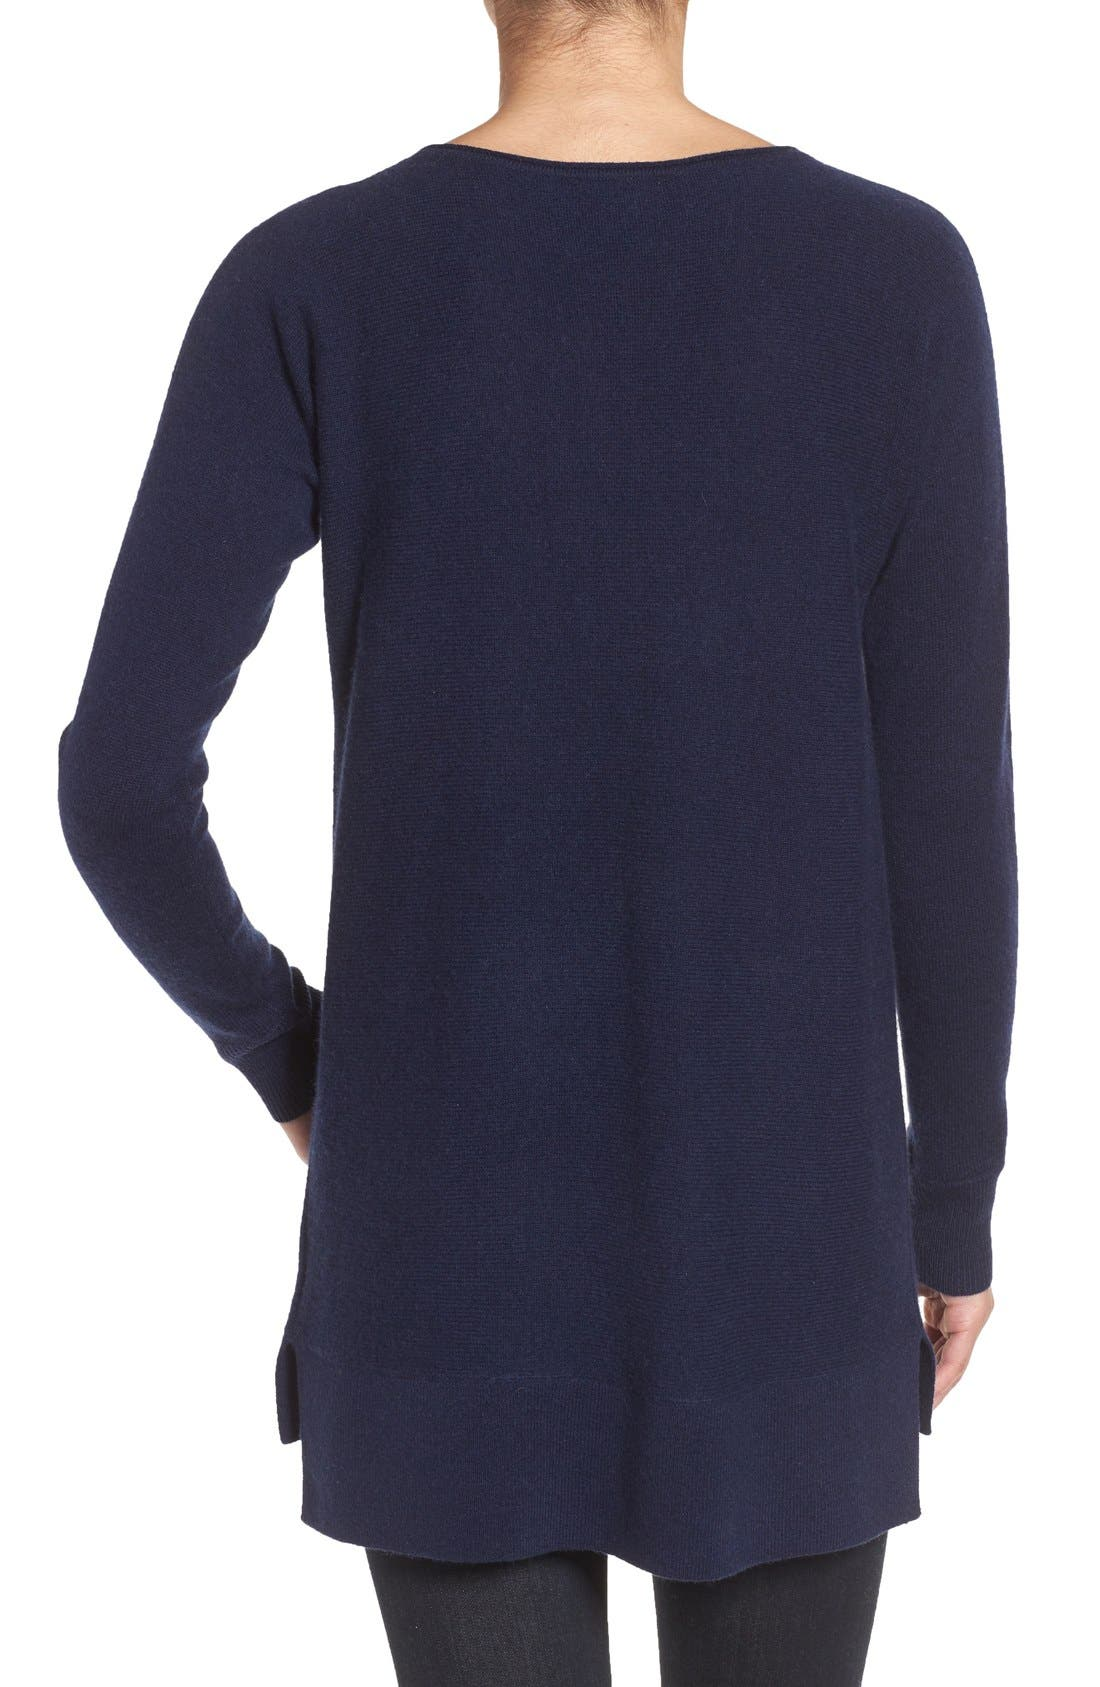 Womens Cashmere Cashmere Blend Sweaters Nordstrom